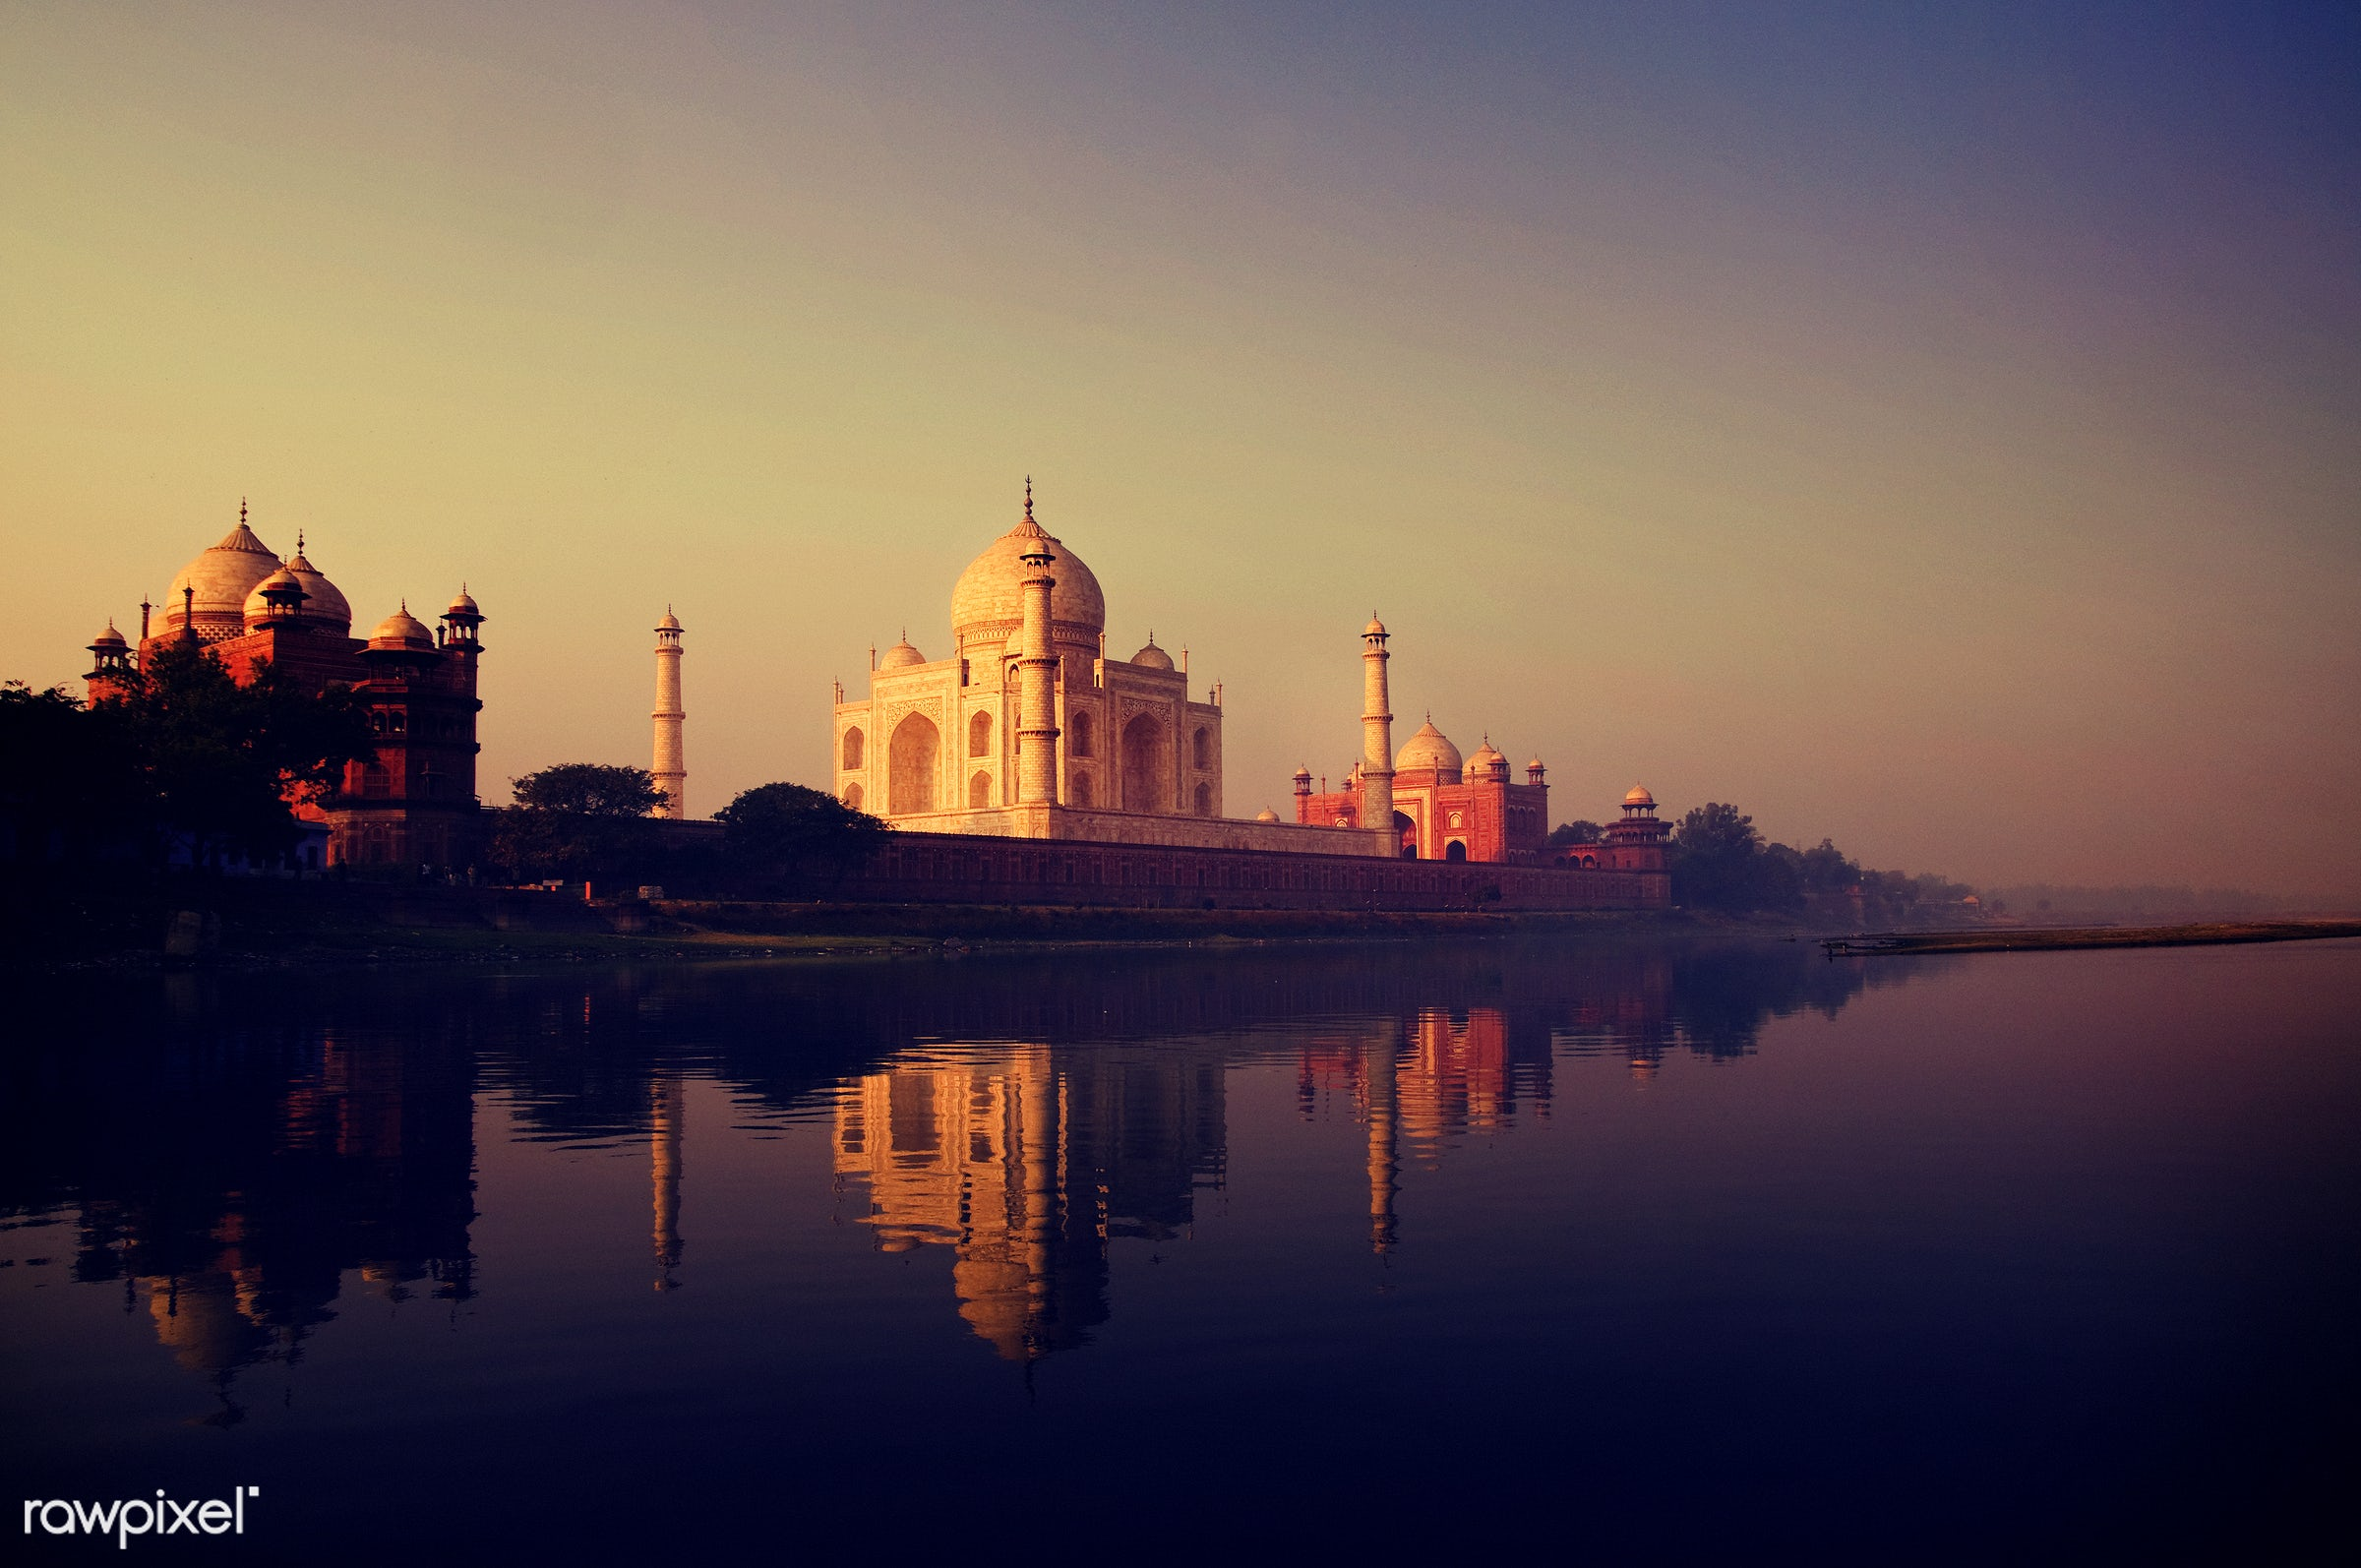 The Taj Mahal in Agra, India - 7 wonders, agra, architecture, architecture and buildings, asia, building exterior, built...